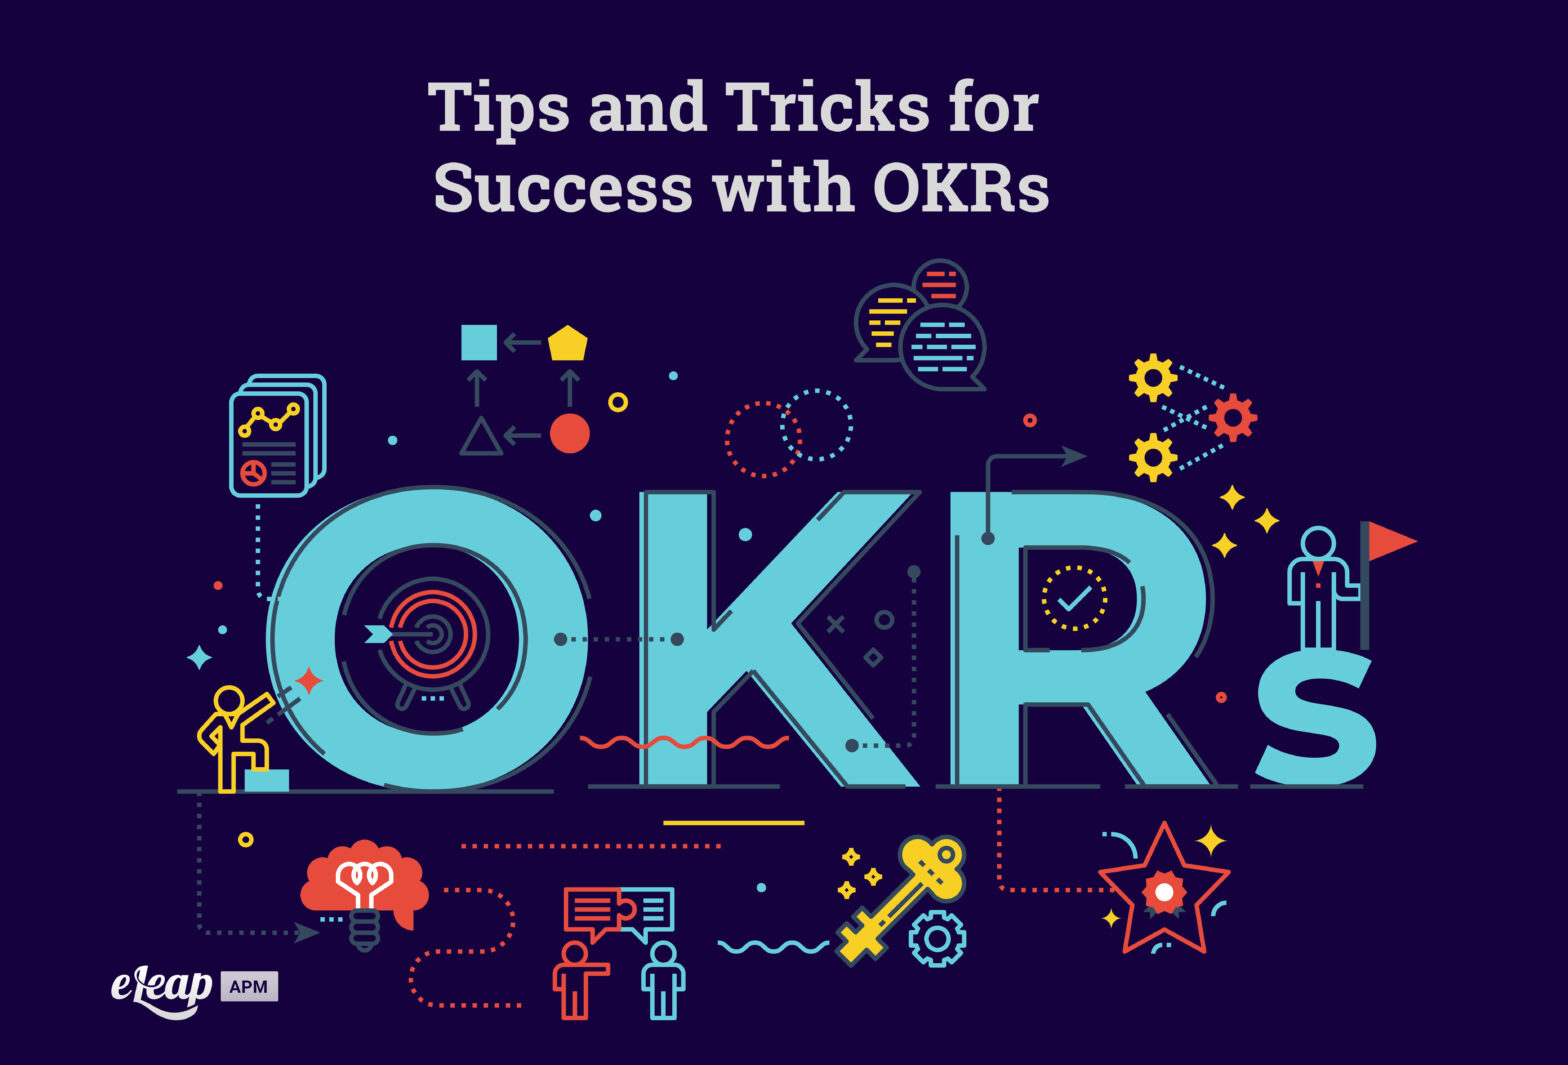 Tips and Tricks for Success with OKRs